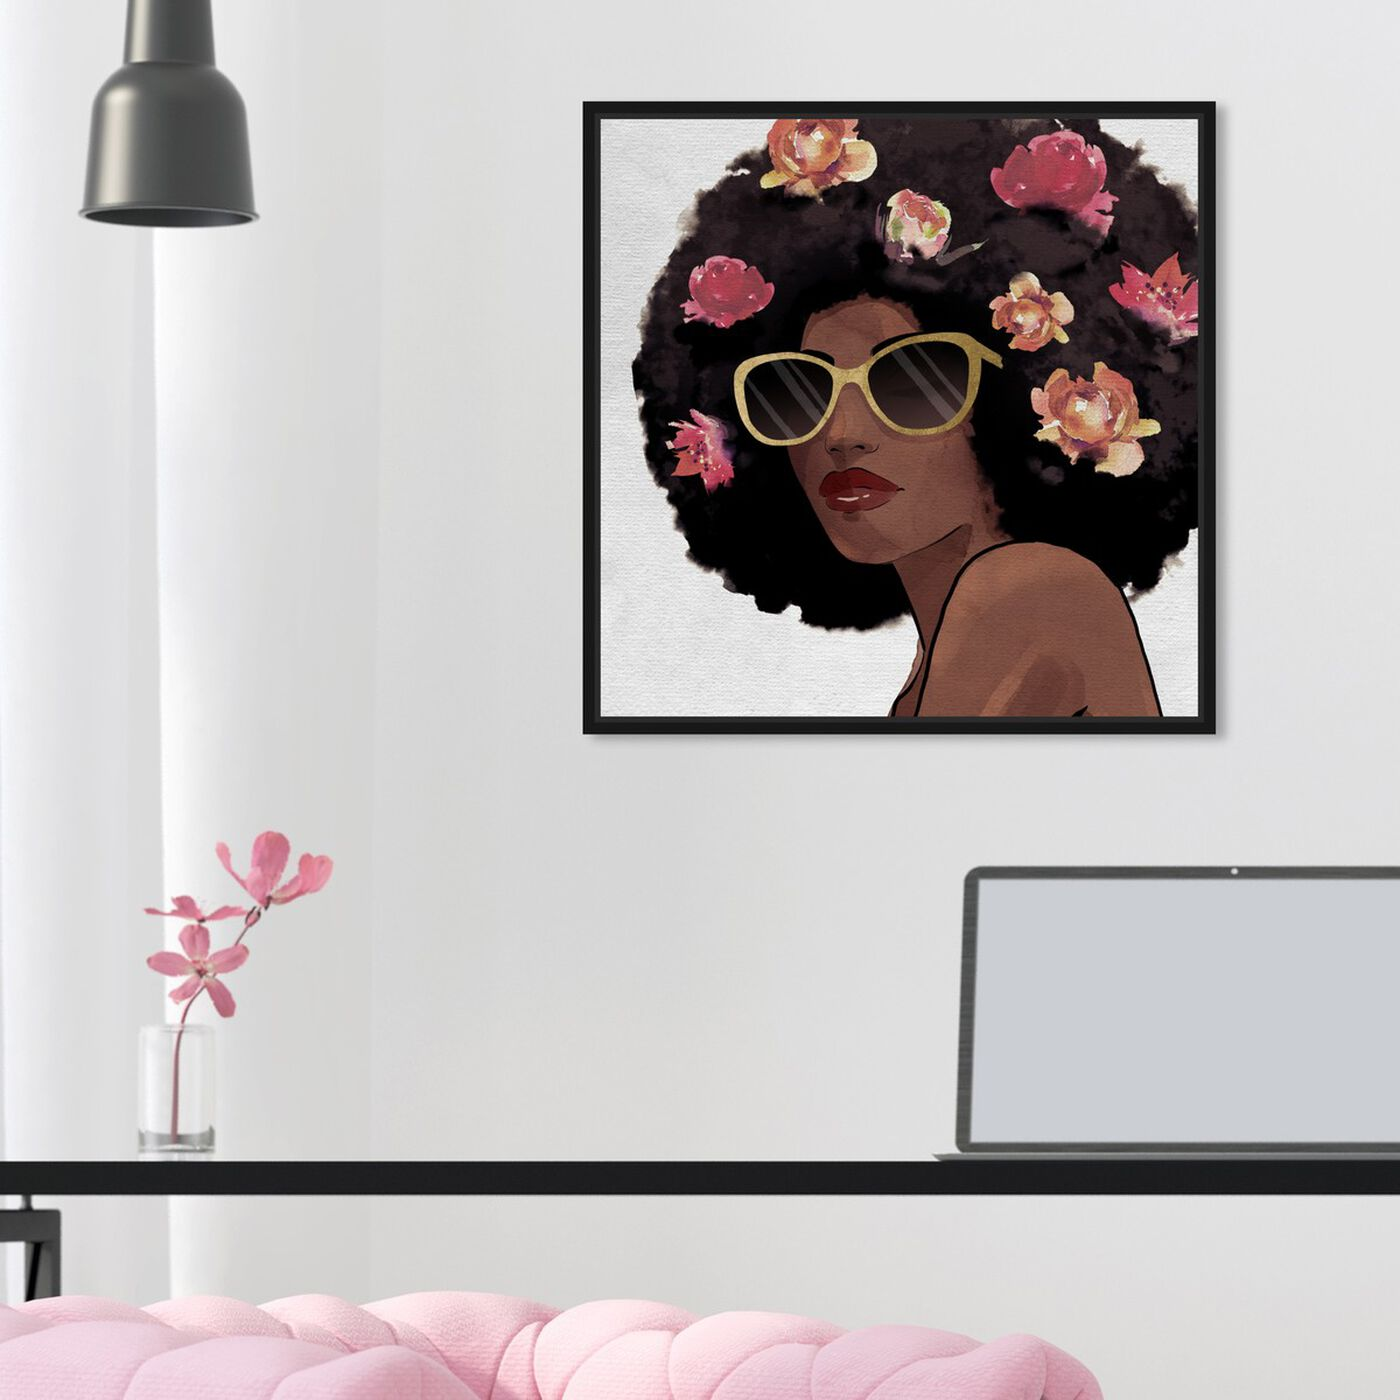 Hanging view of Flowers to Inspire Shades featuring fashion and glam and portraits art.